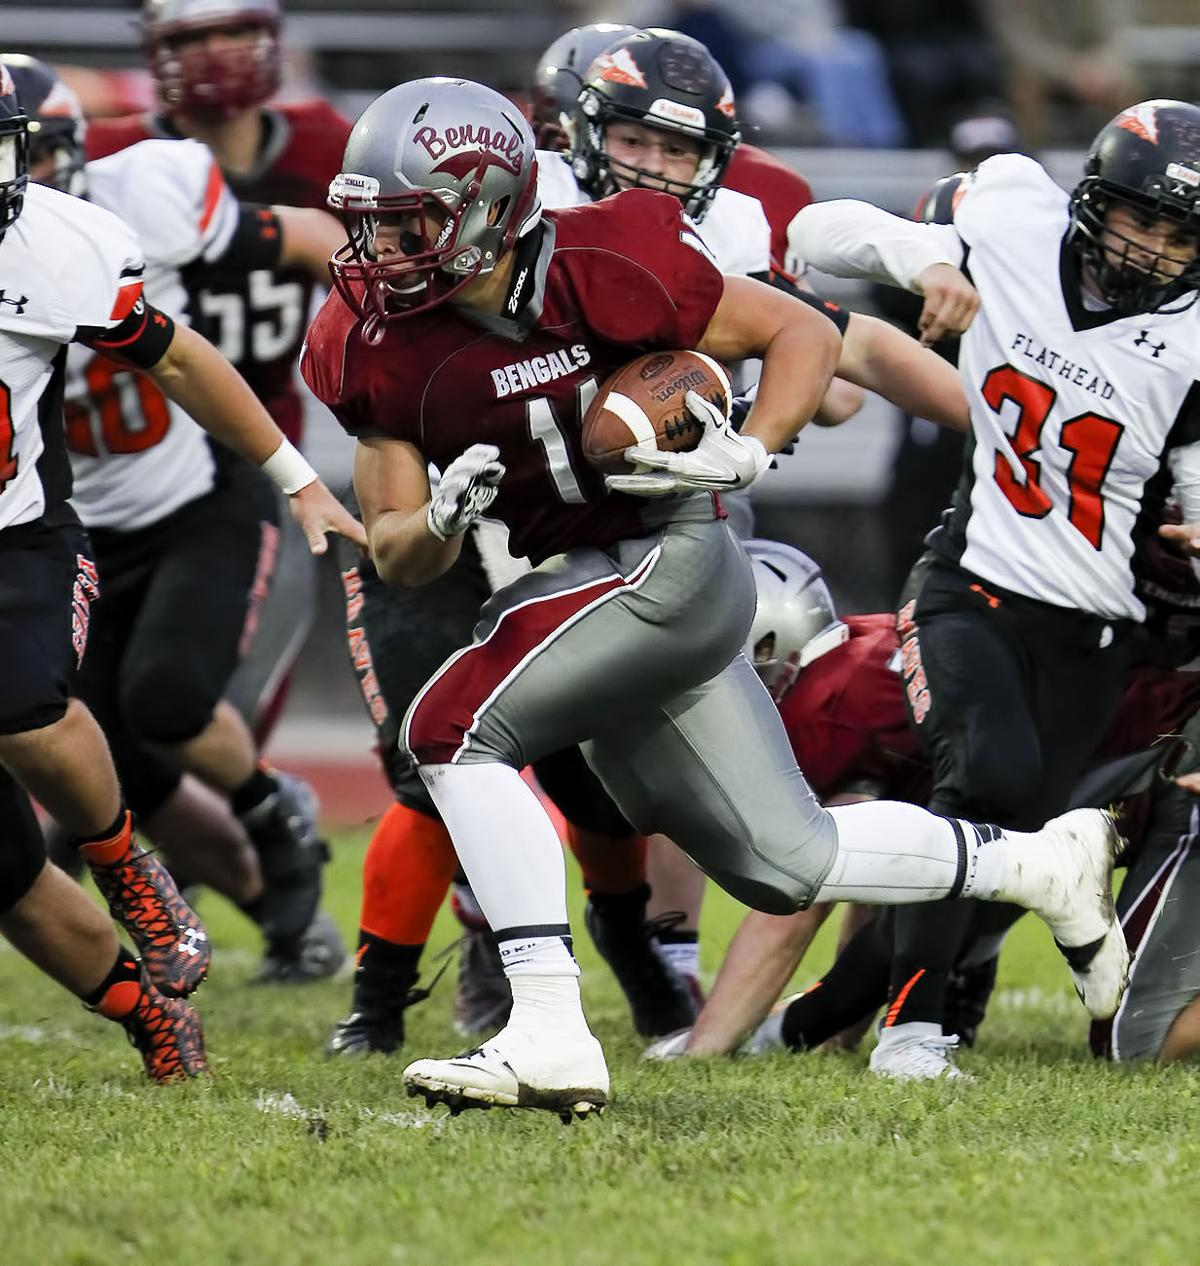 football; HHS vs Flathead (copy)